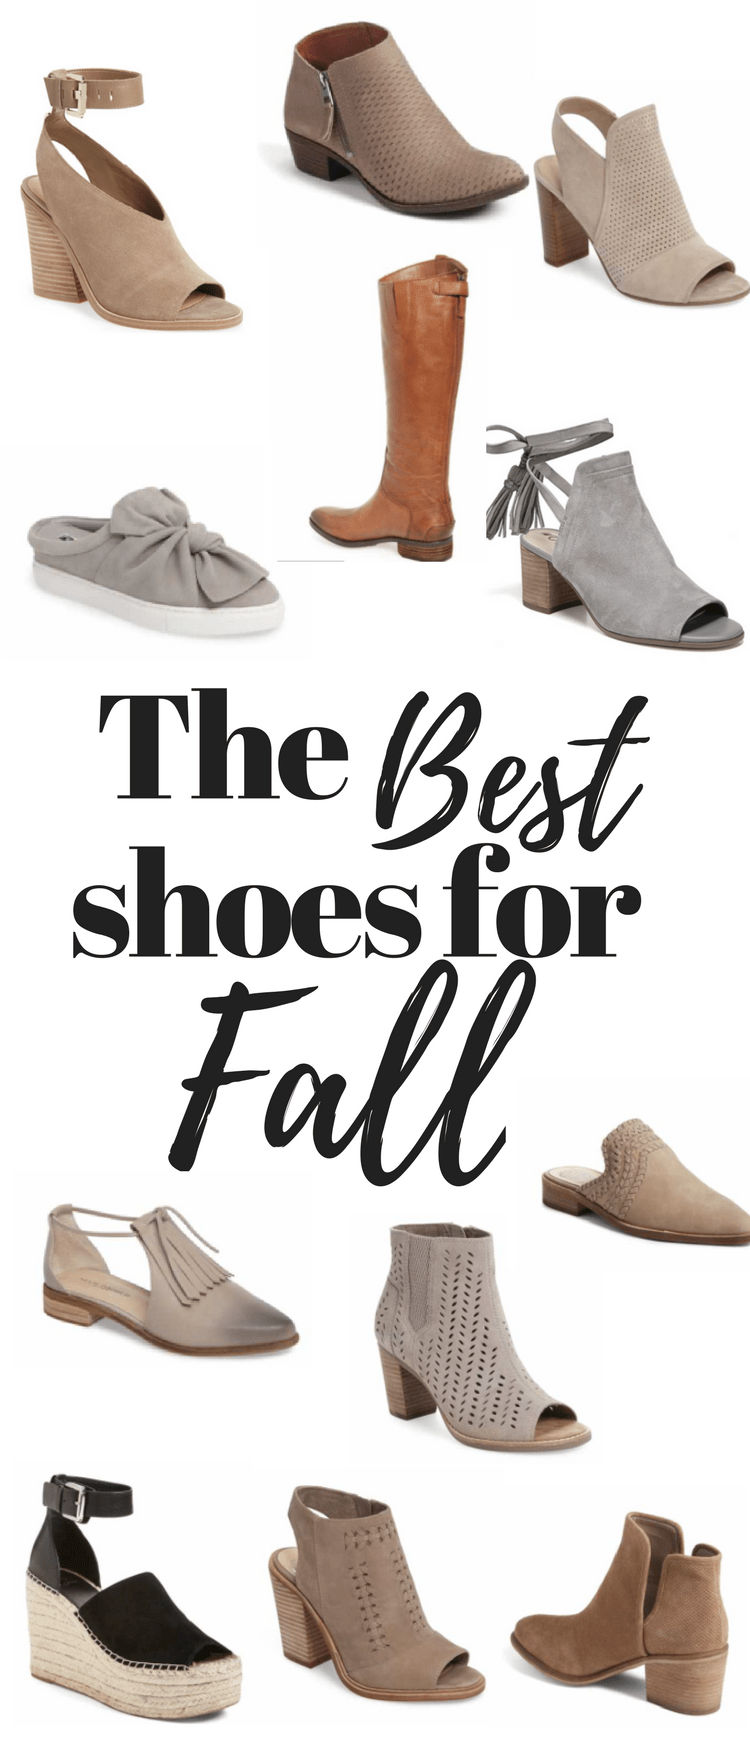 Fall Shoes, Shoes, Fall Fashion, Fall Shoe Sale, Shoes for Fall